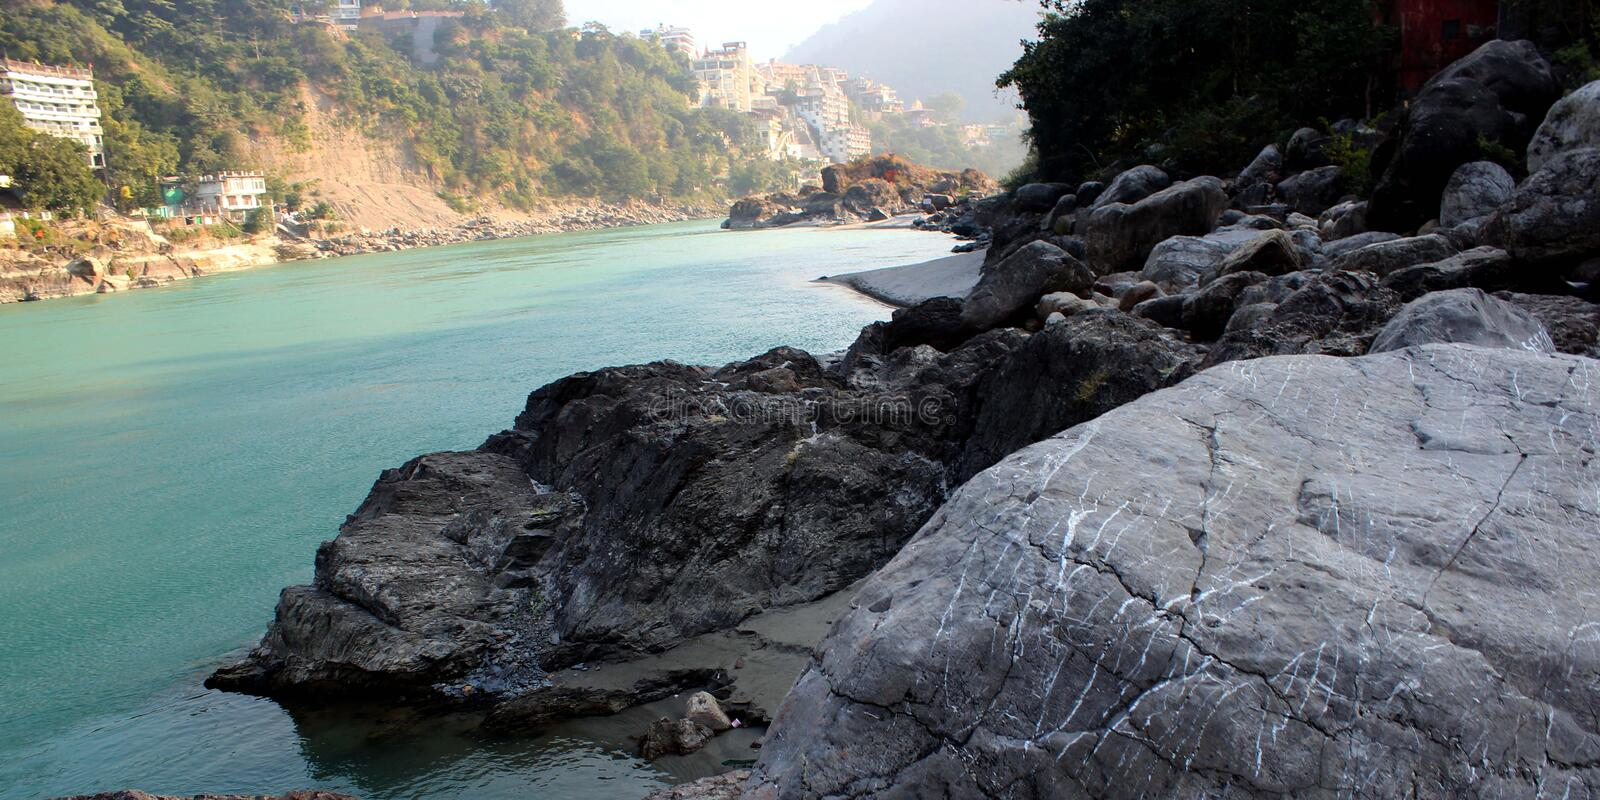 Natural Image. Rishikesh. Rishikesh, a most tranquil place in northern Uttarakhand, surrounded by hills and bisected by the wide and sluggish Ganges, is often stock image